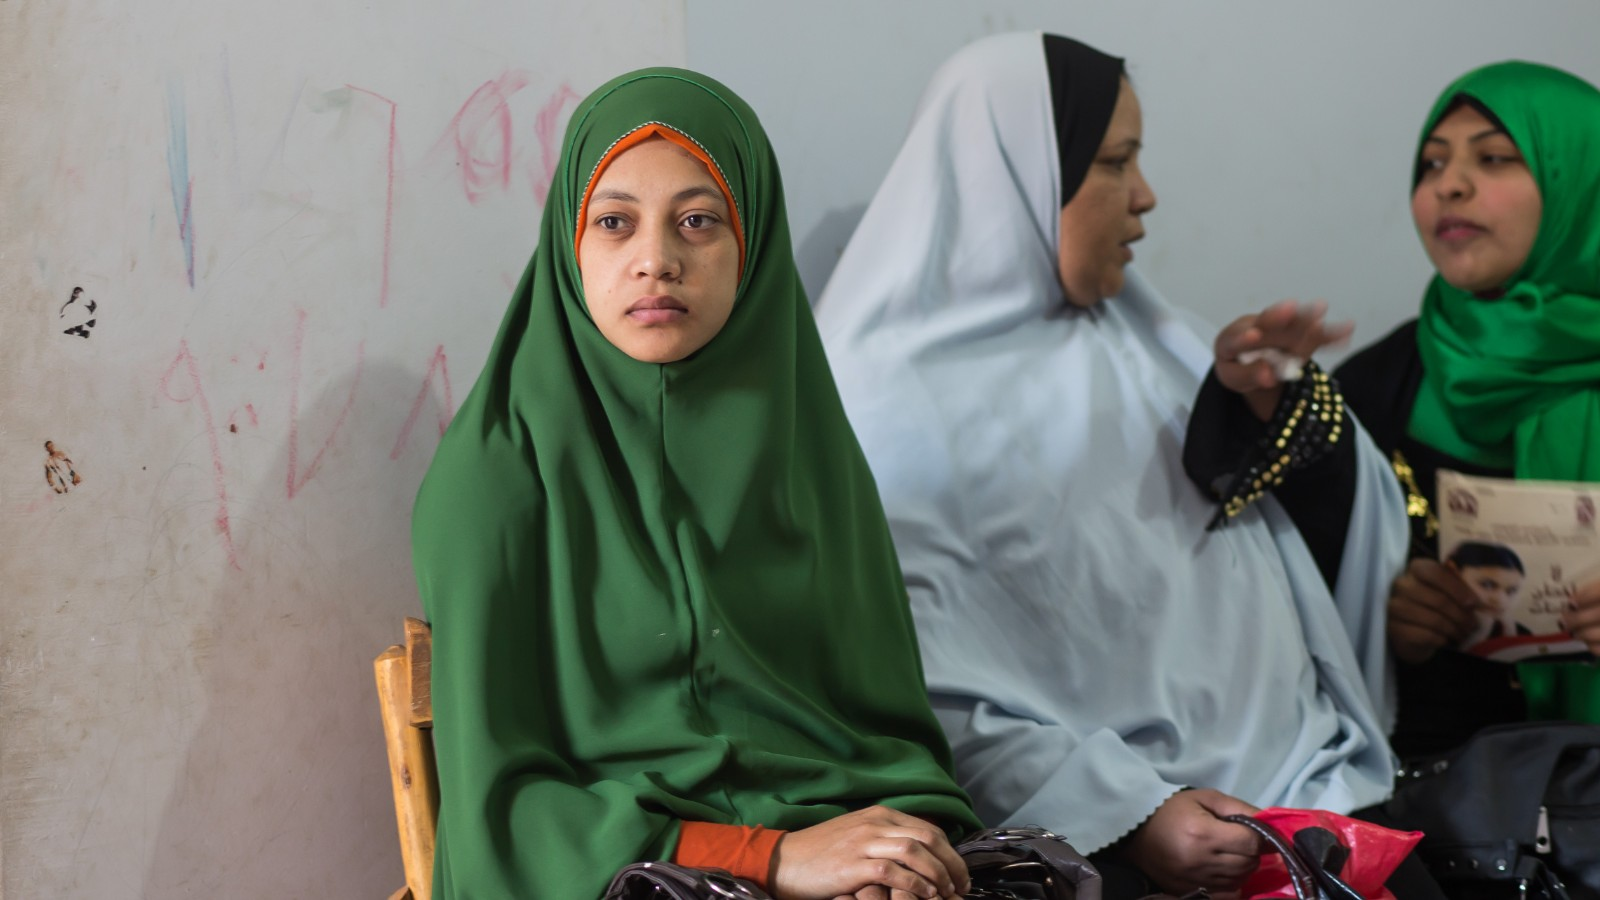 female genital mutilation in egypt essay In may 2015, egypt's minister of health announced that 92 percent of married women have undergone female genital mutilation despite a large number of men and women surveyed believing that fgm is condoned by islam, egypt's top islamic authority has condemned the act as 'un-islamic' and 'barbaric'.